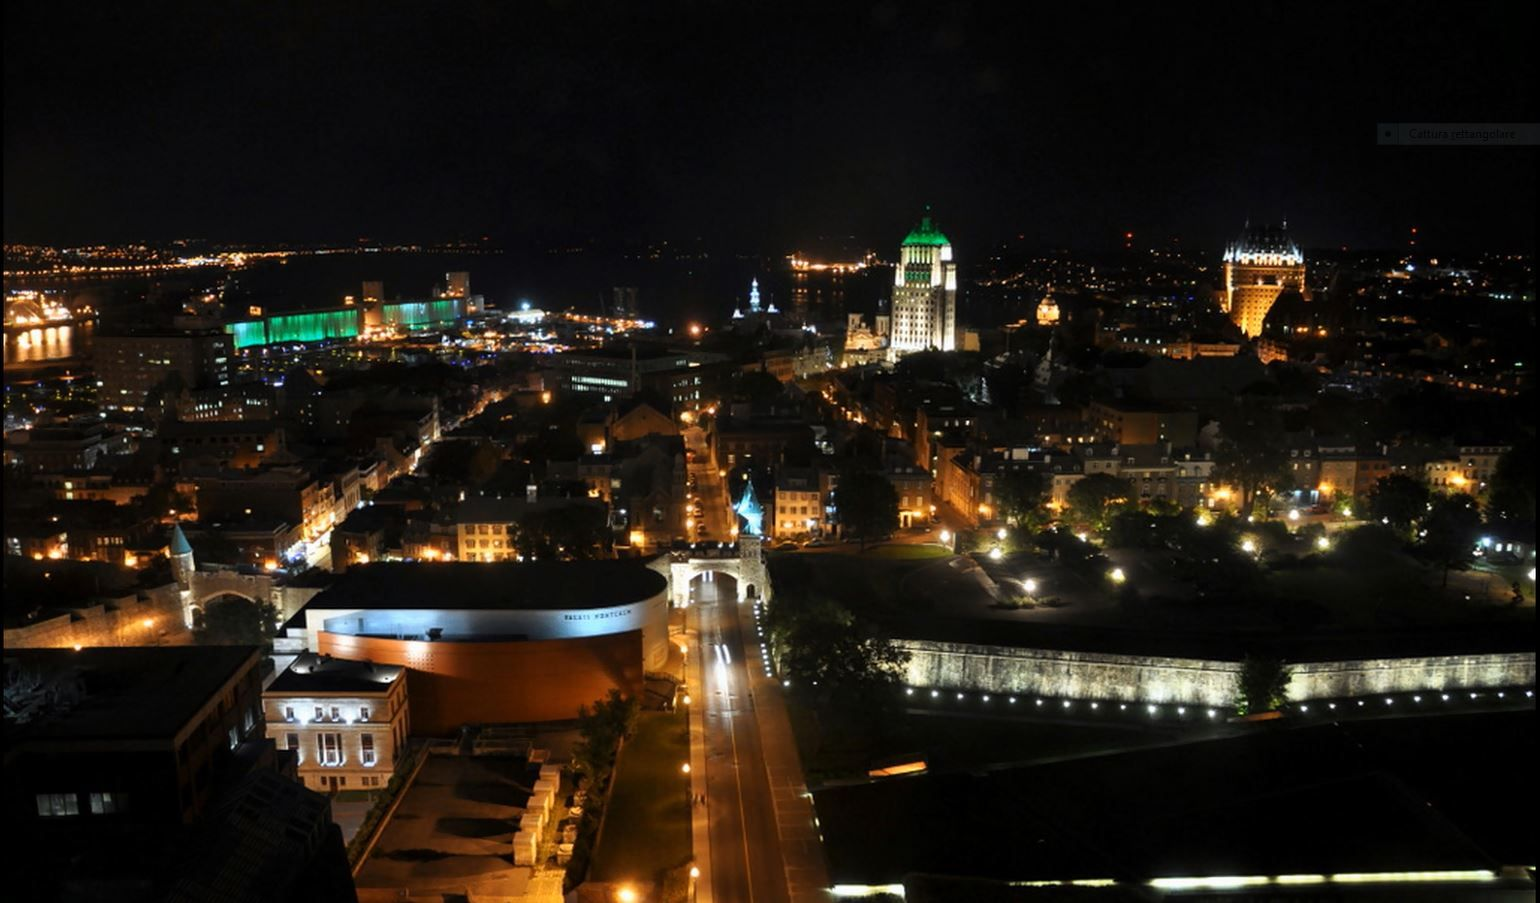 Quebec city night hotel view